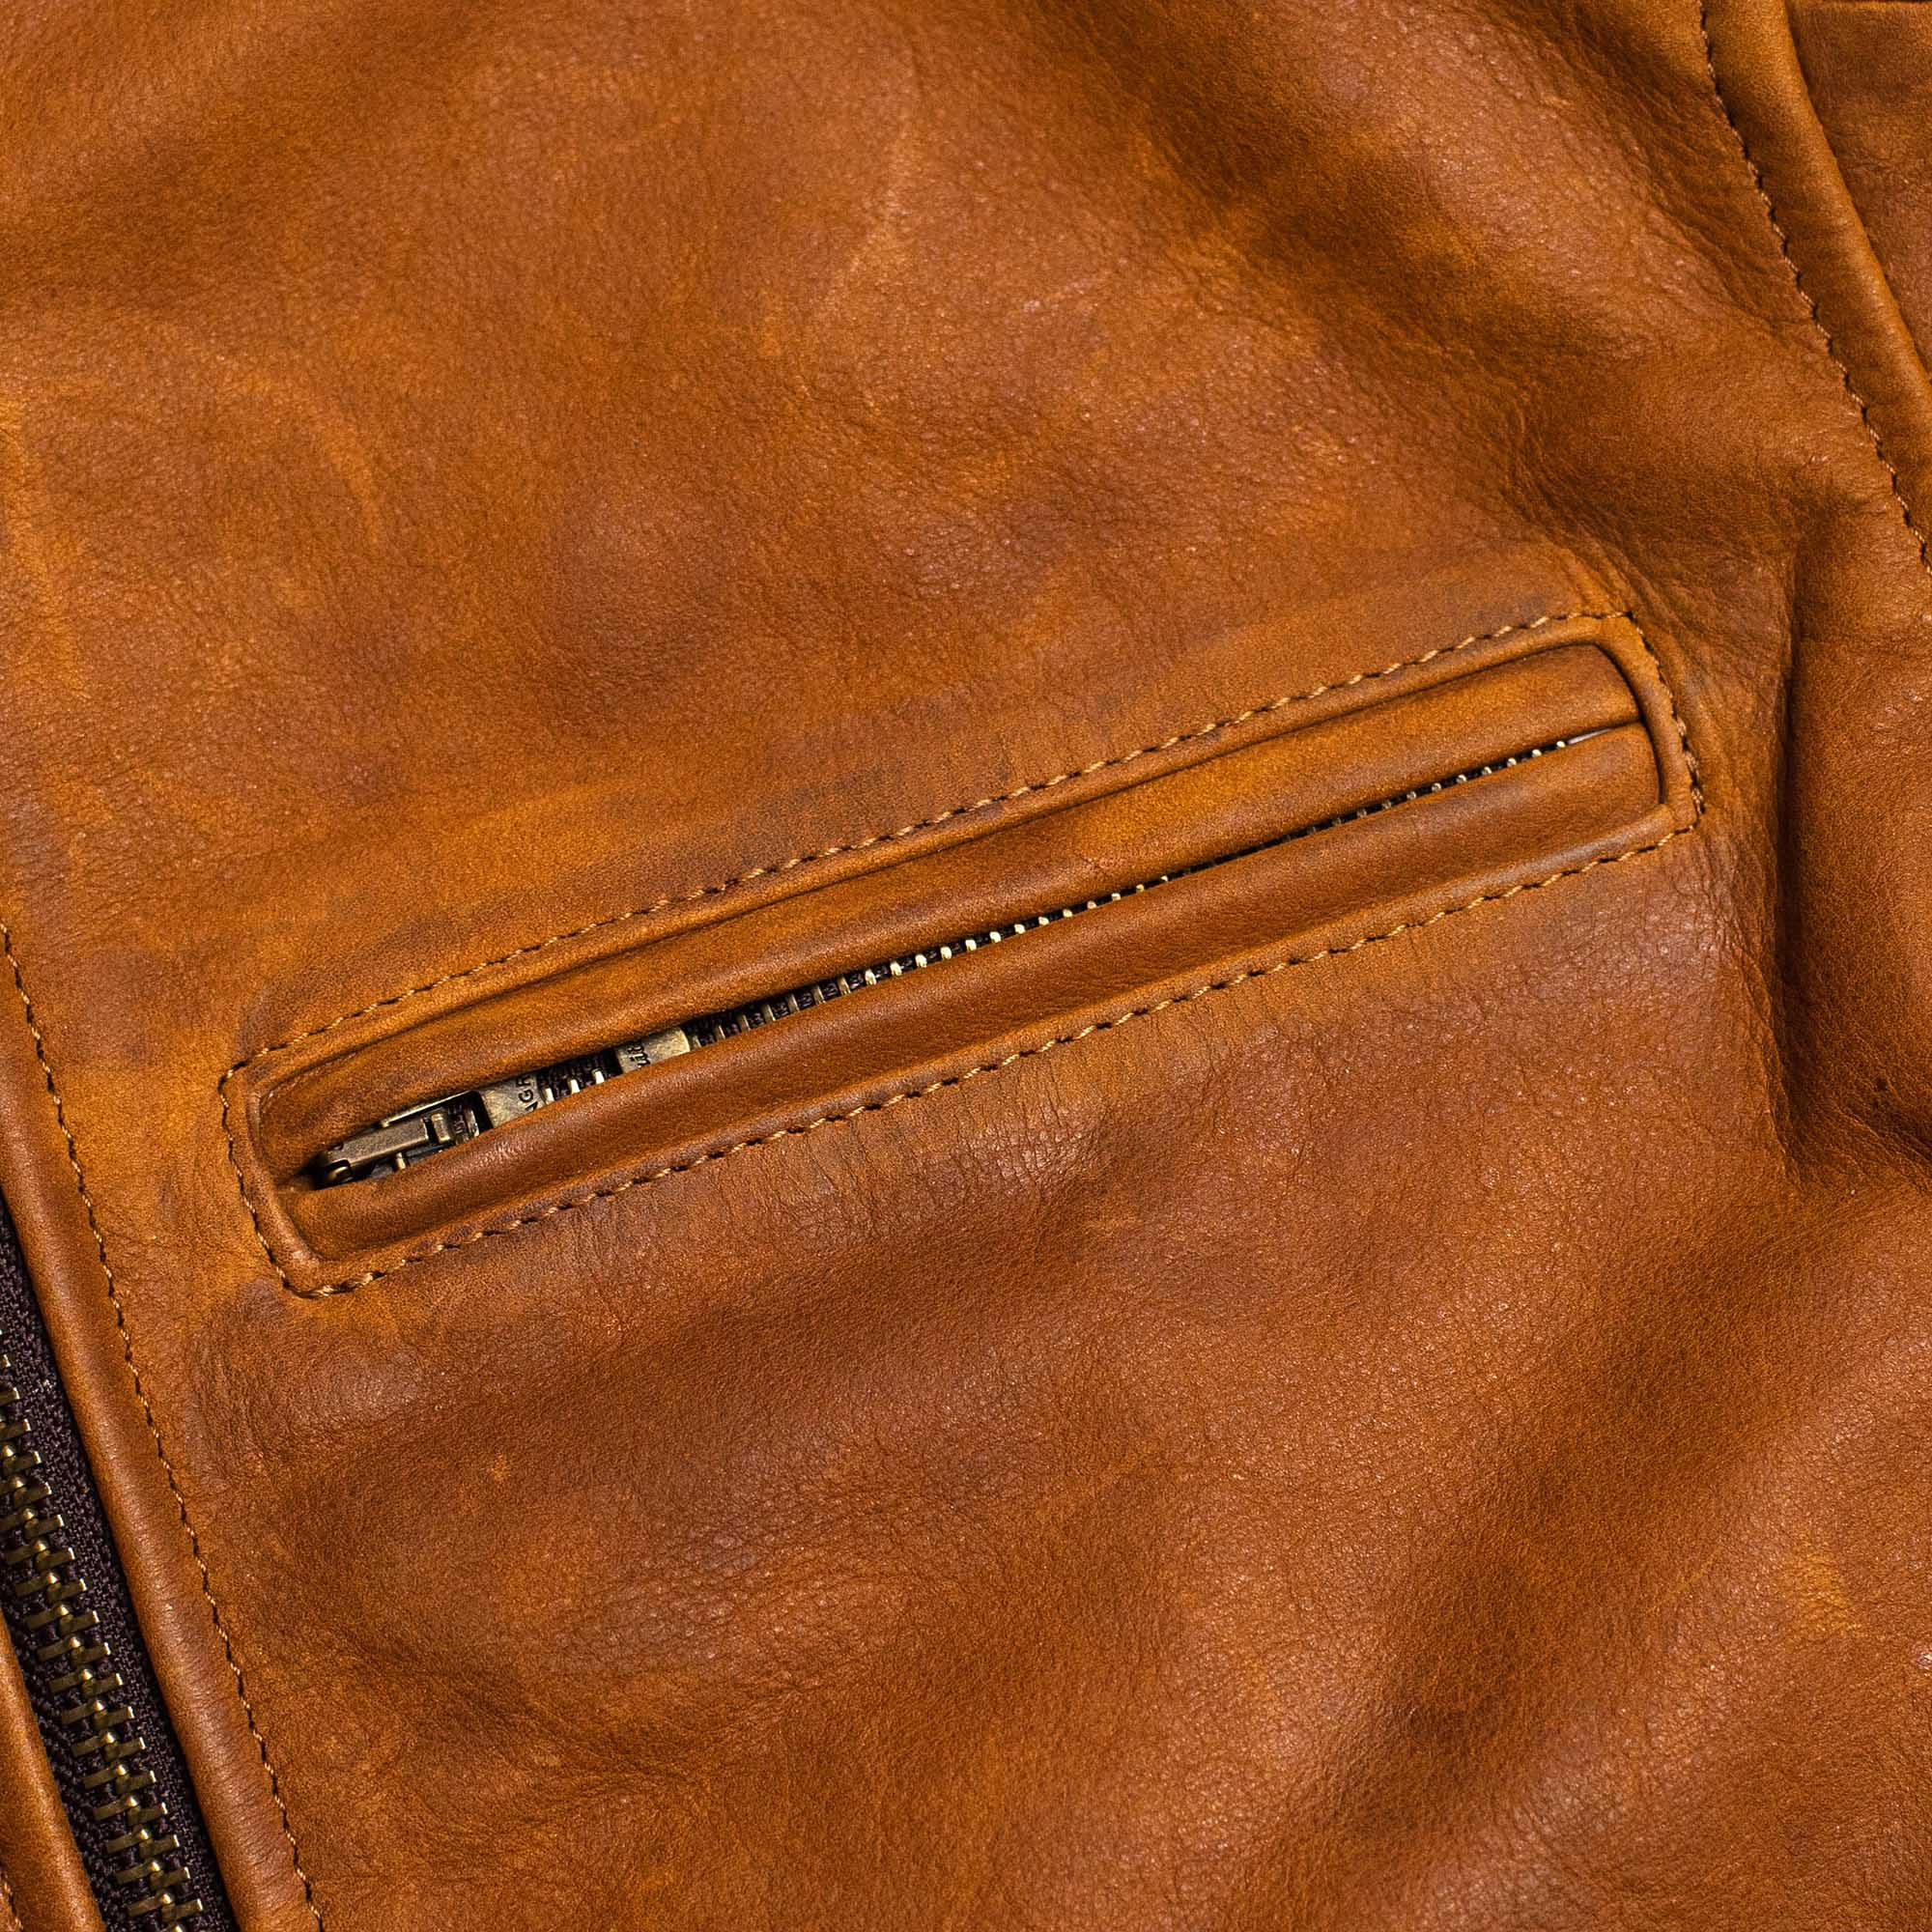 shangri-la-heritage-cafe-racer-nubuck-leather-jacket-still-life-chest-pocket